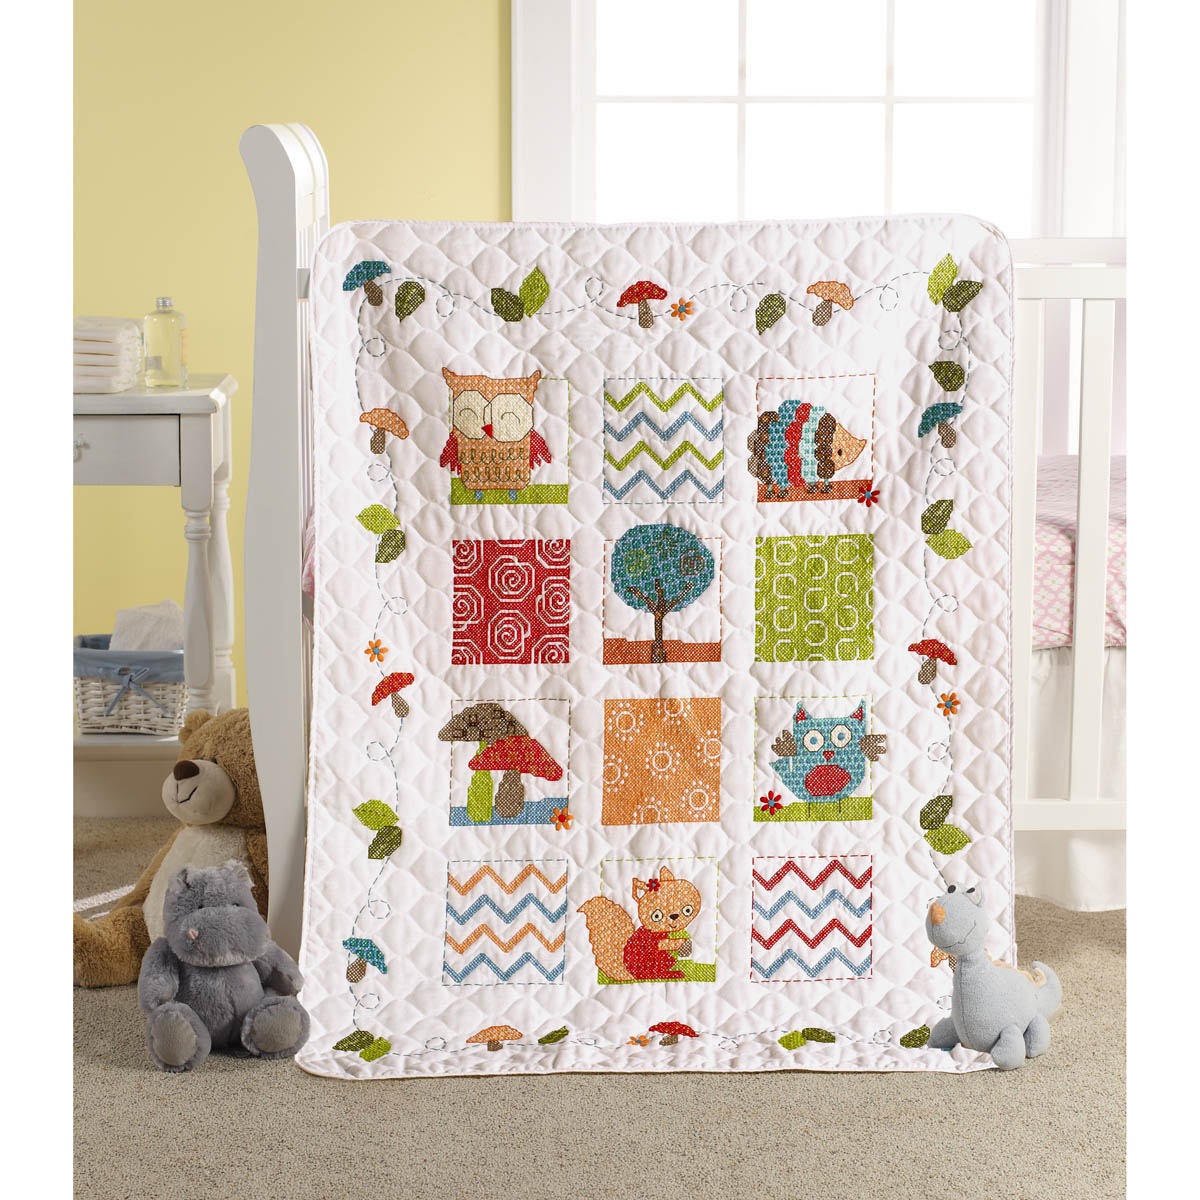 Bucilla ® Baby - Stamped Cross Stitch - Crib Ensembles - Woodland Baby - Crib Cover